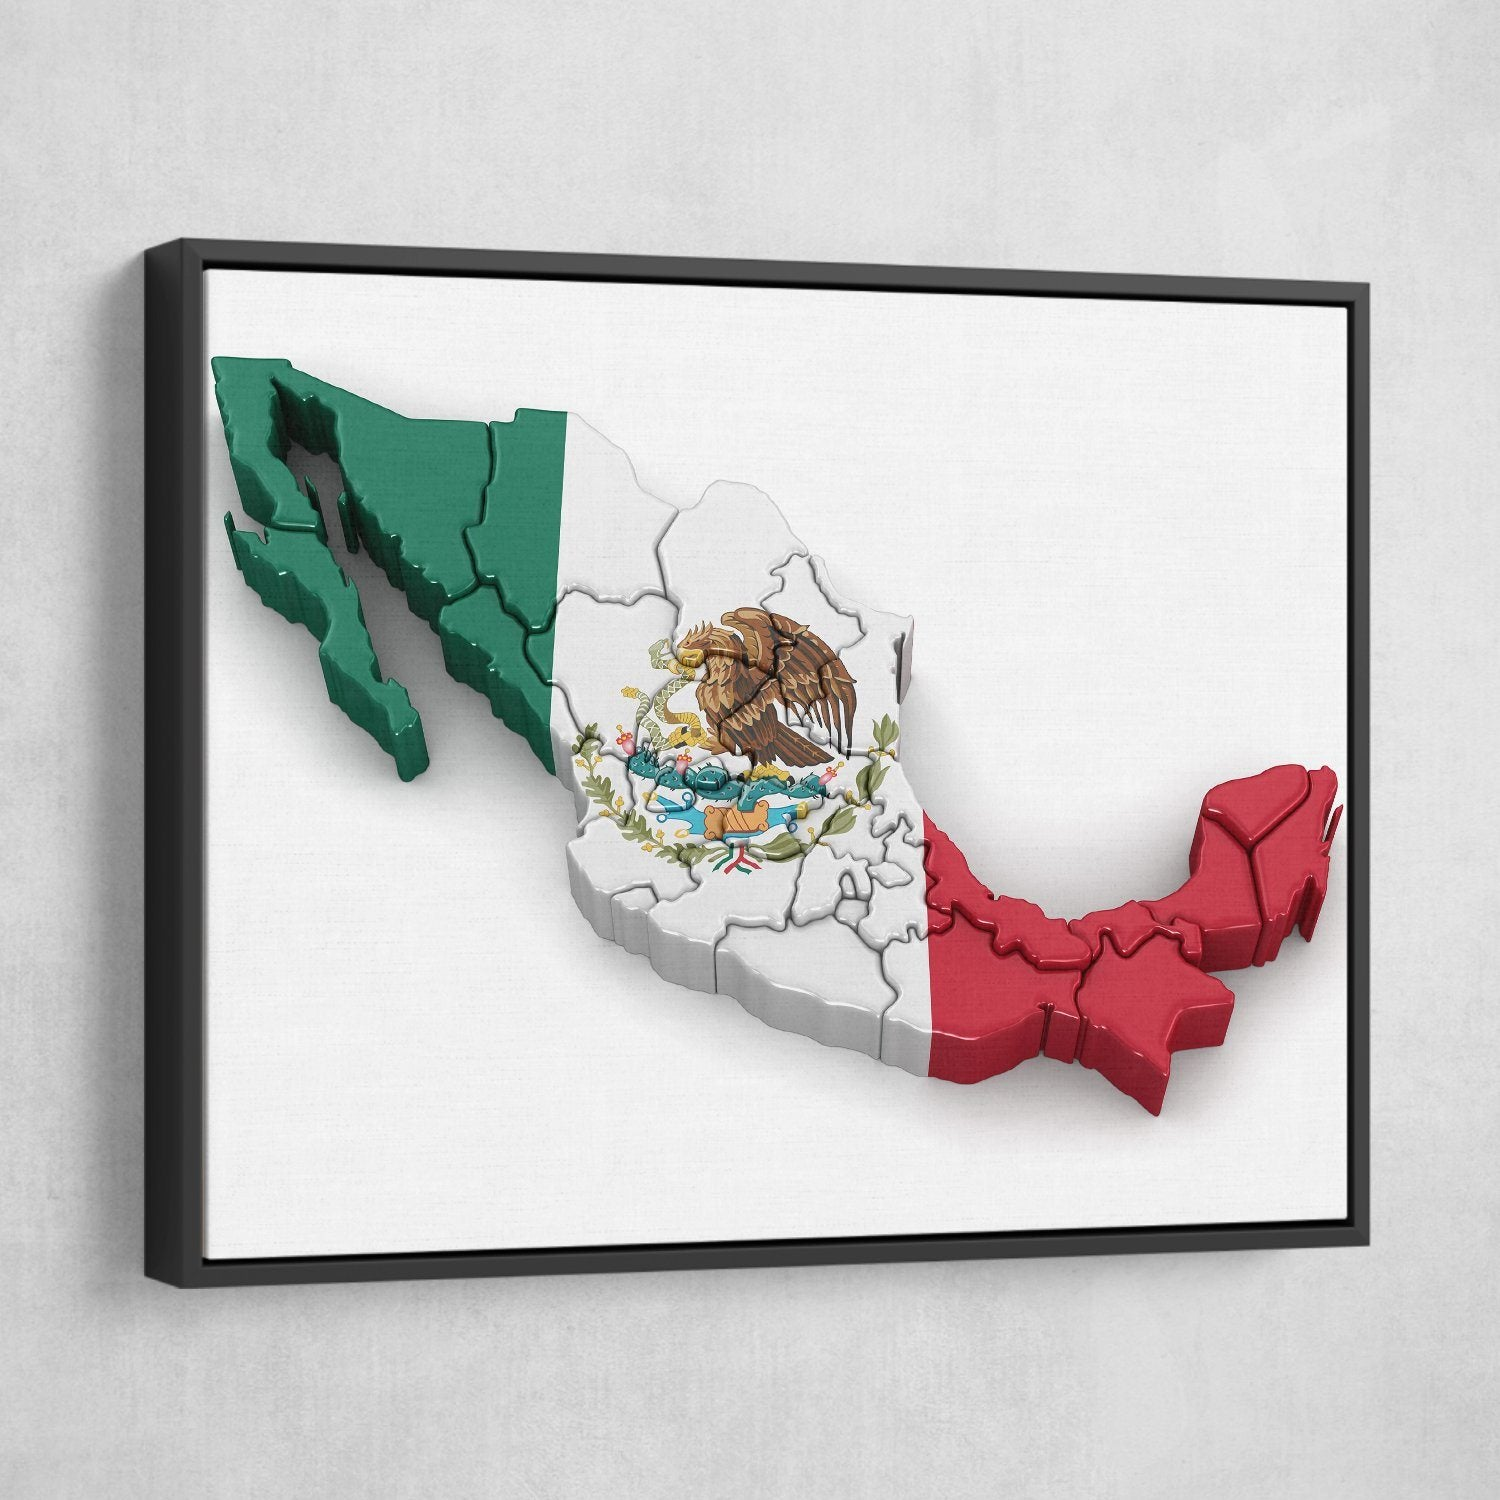 Mexico wall art black frame